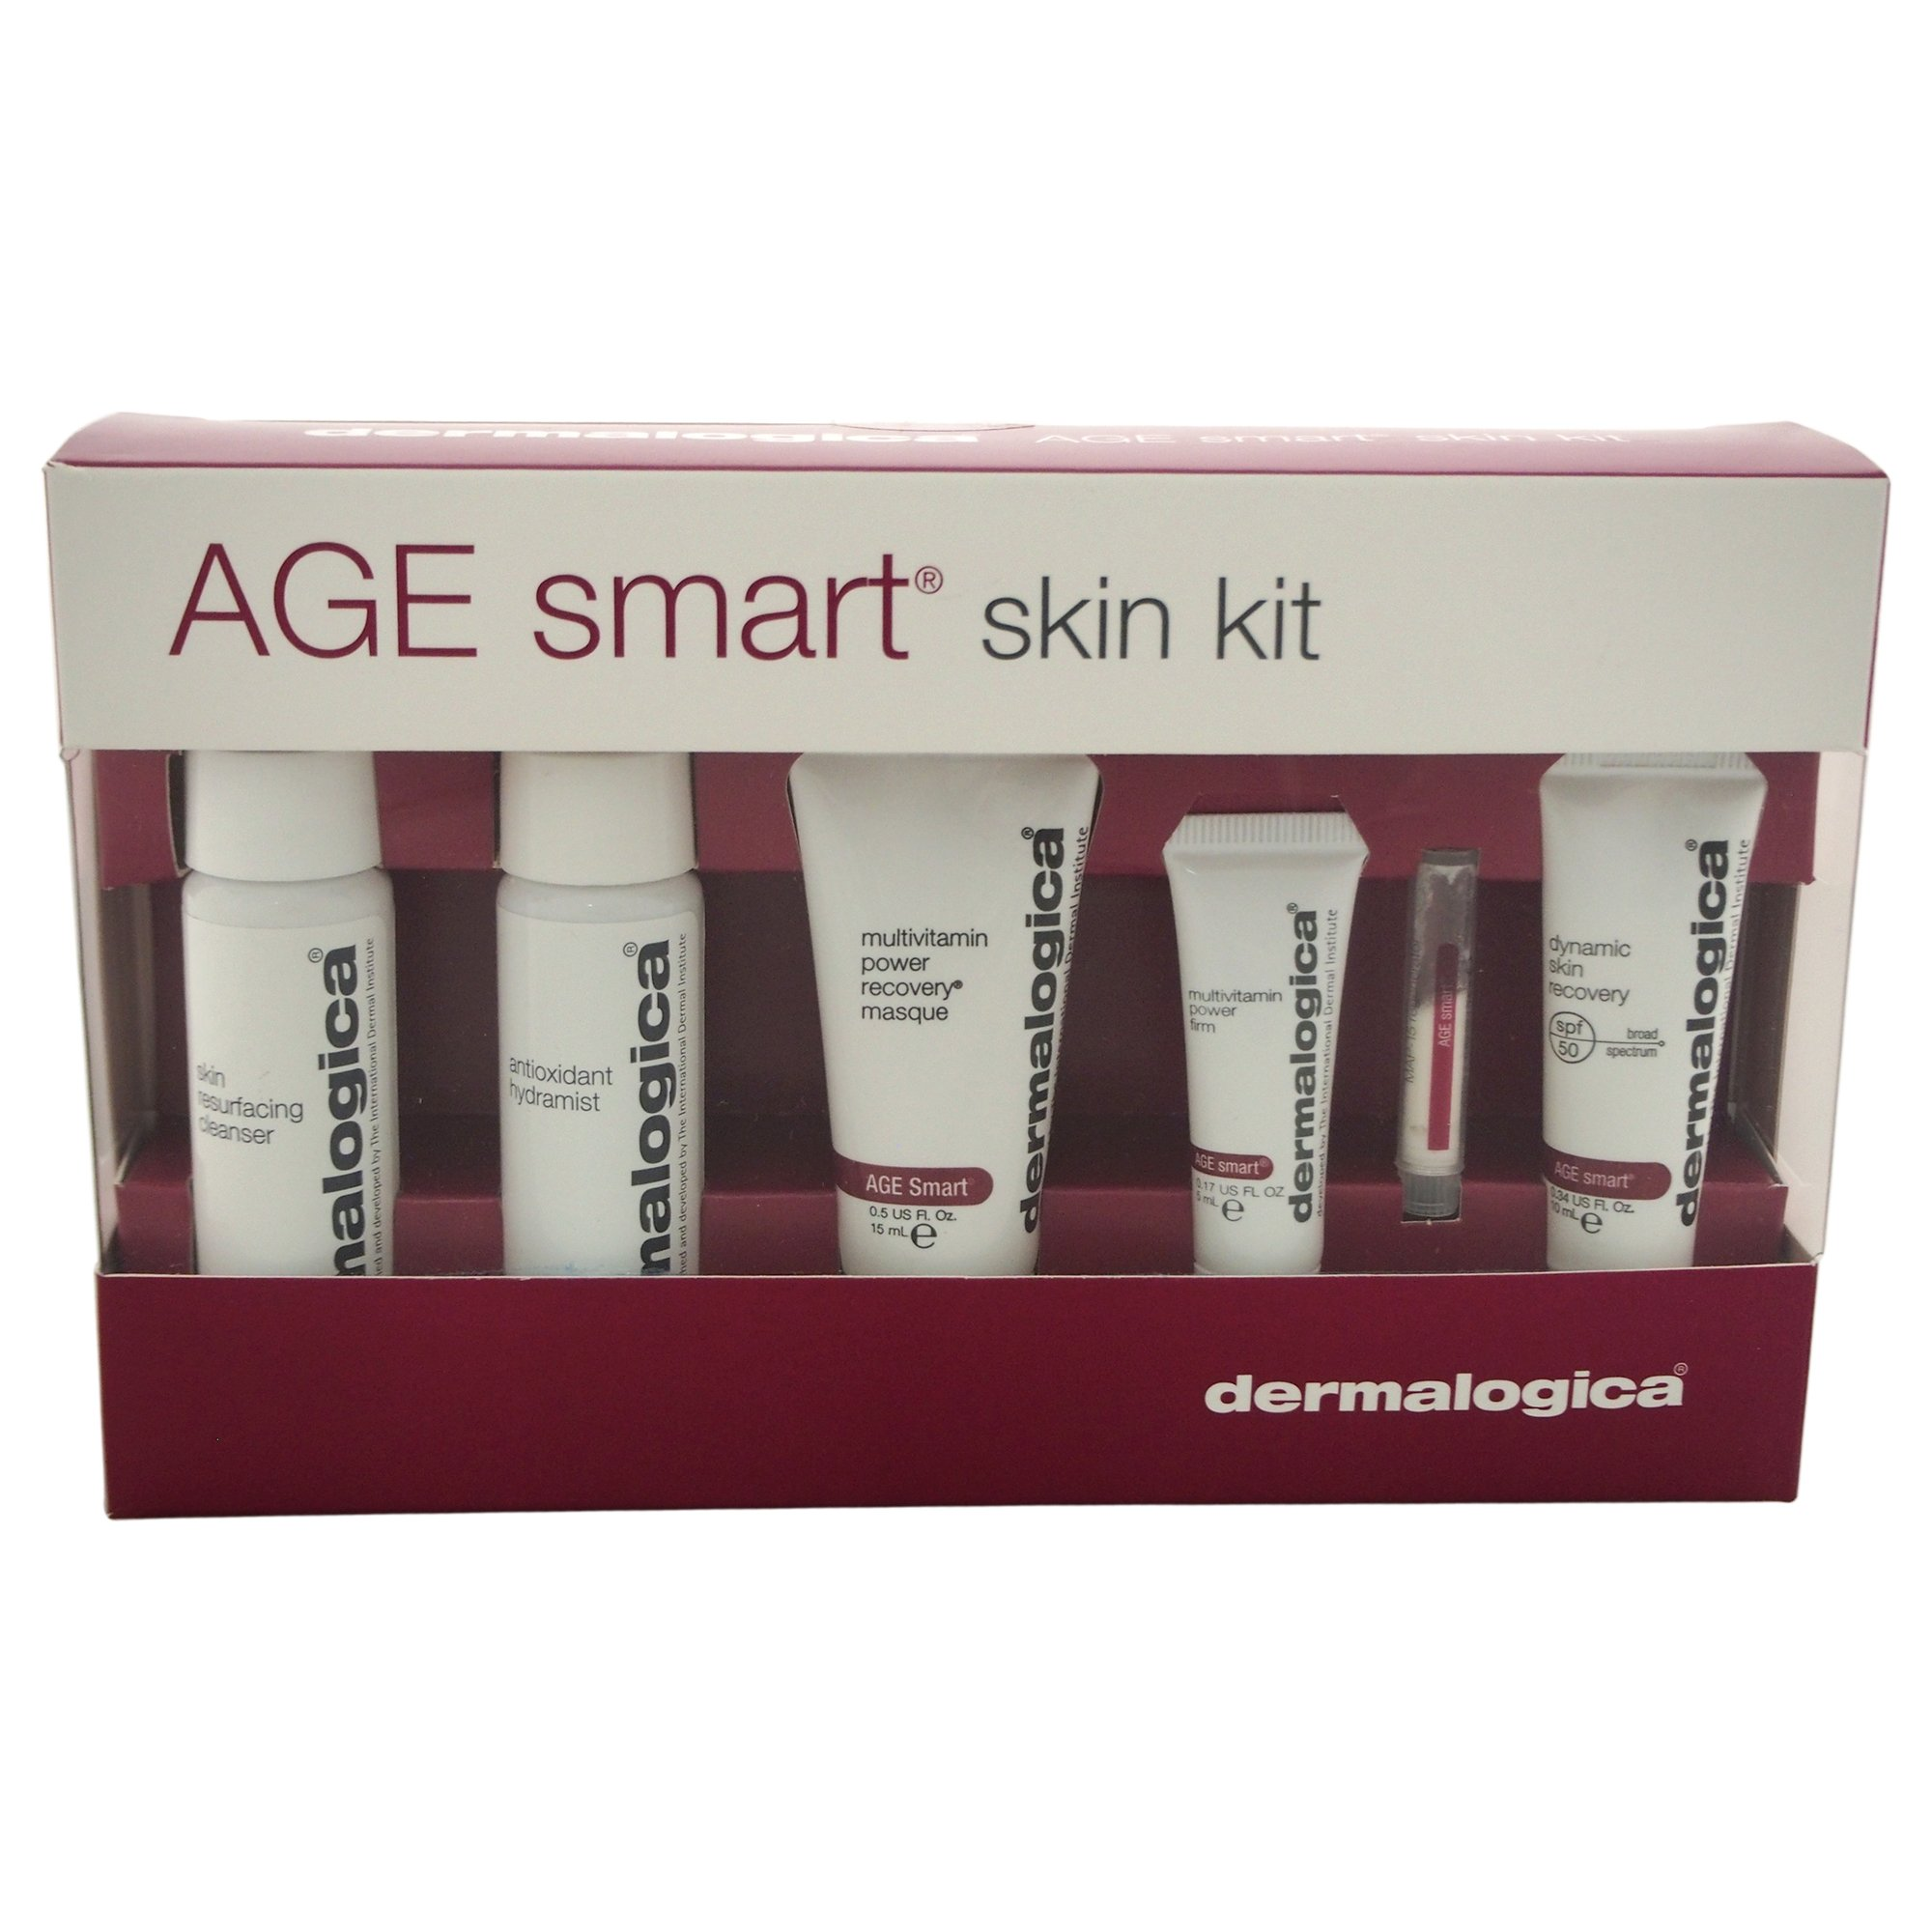 dermalogica age smart starter kit instructions